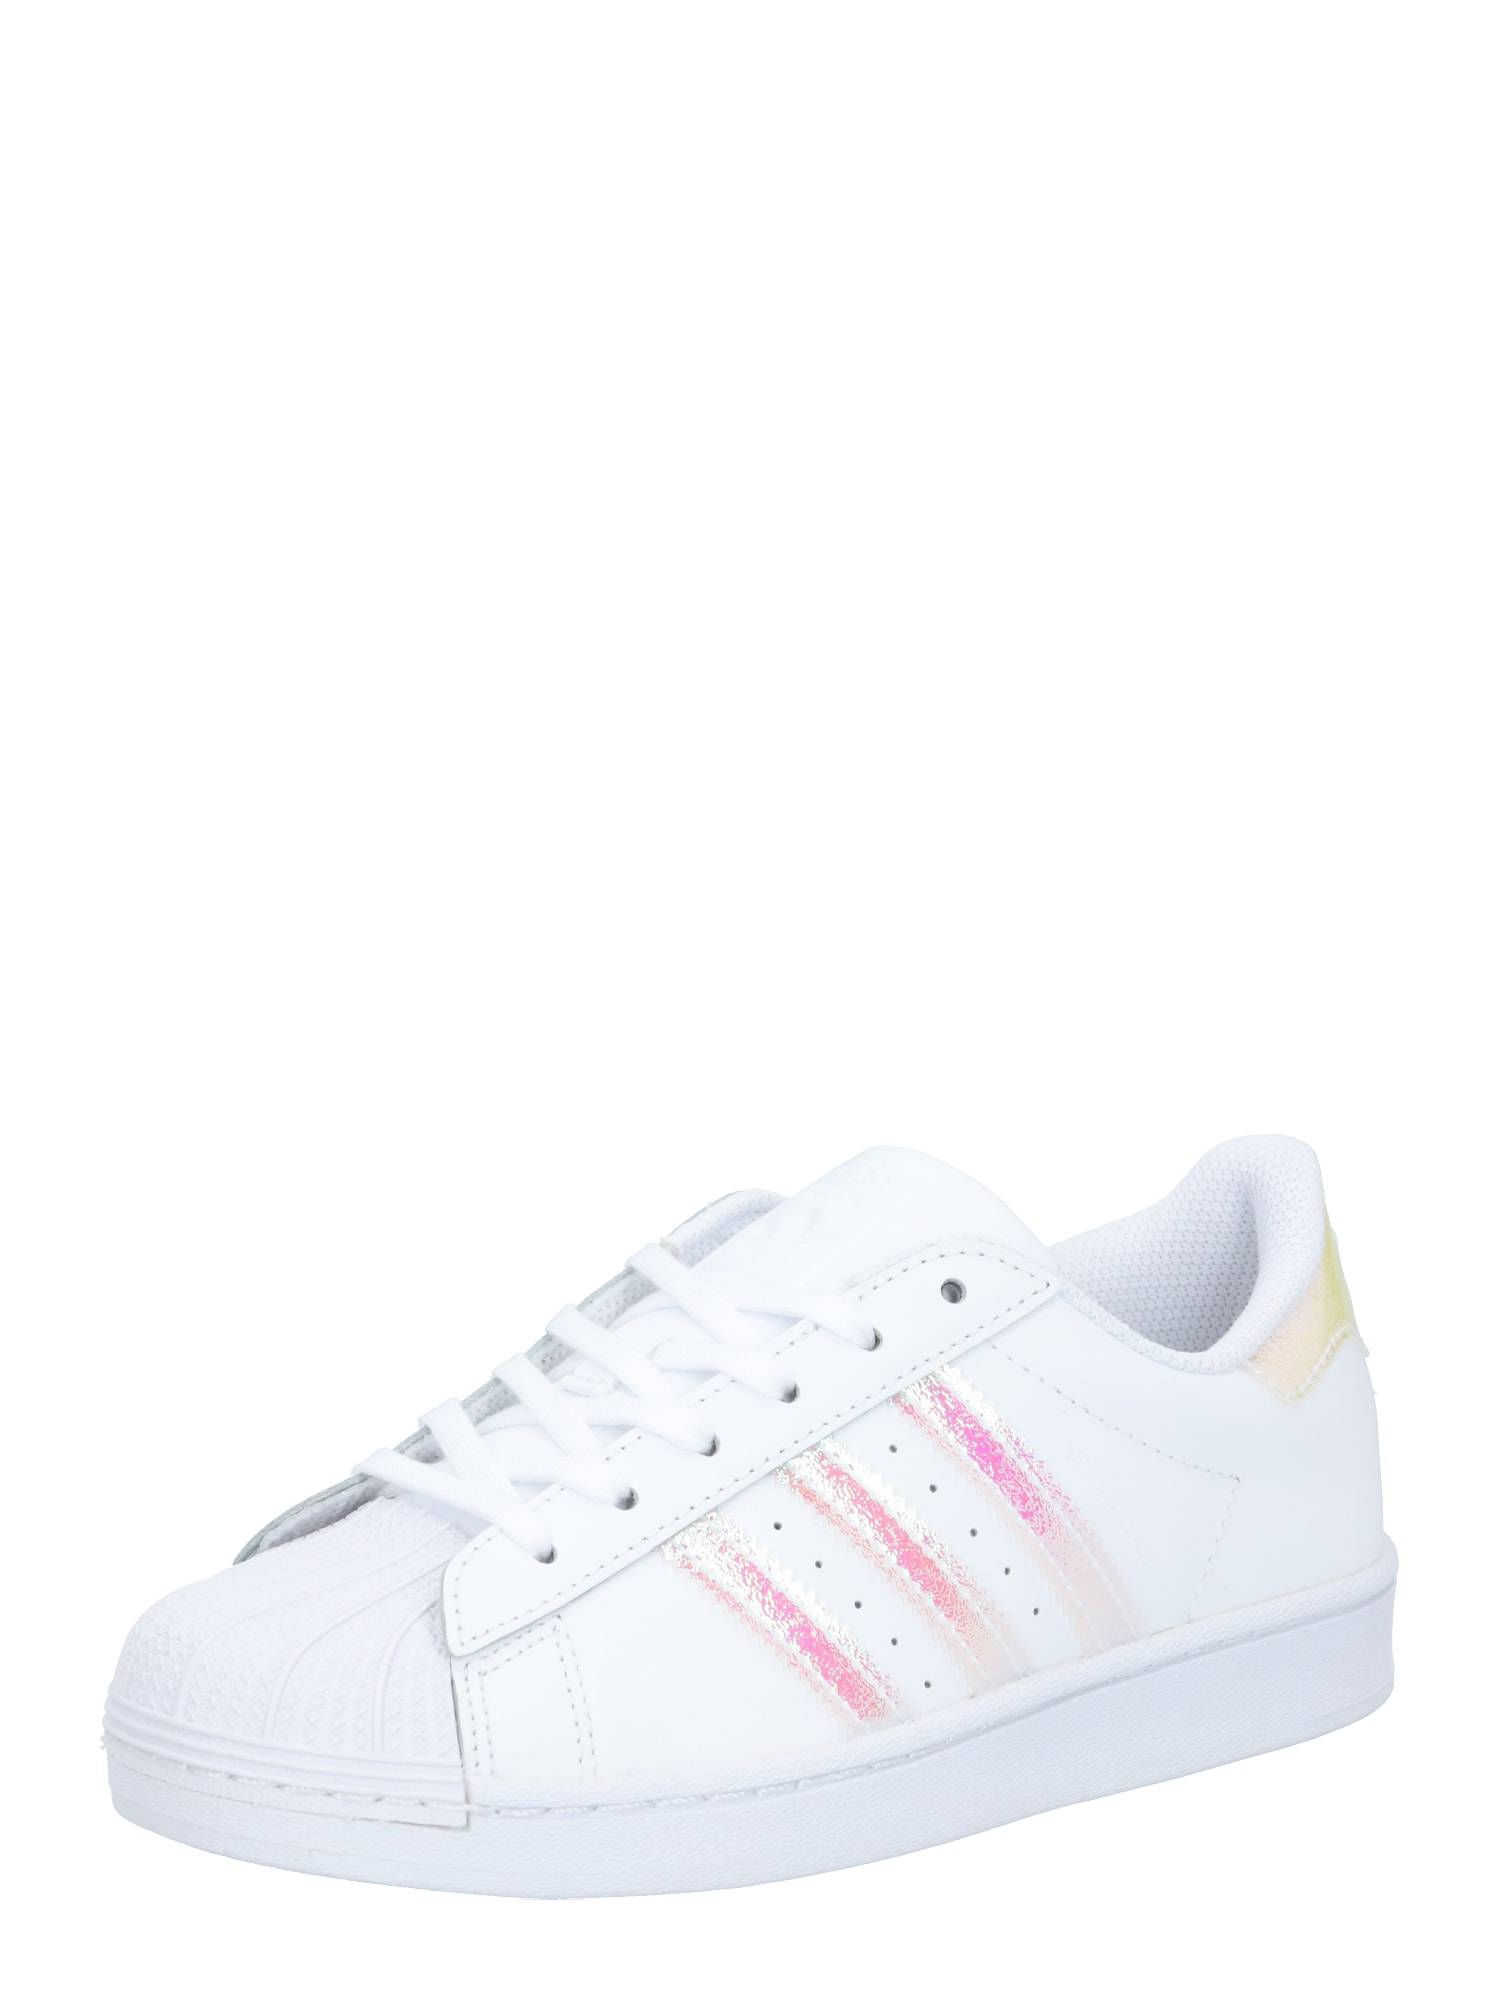 ADIDAS ORIGINALS Baskets 'Superstar C'  - Blanc - Taille: 11.5k - girl